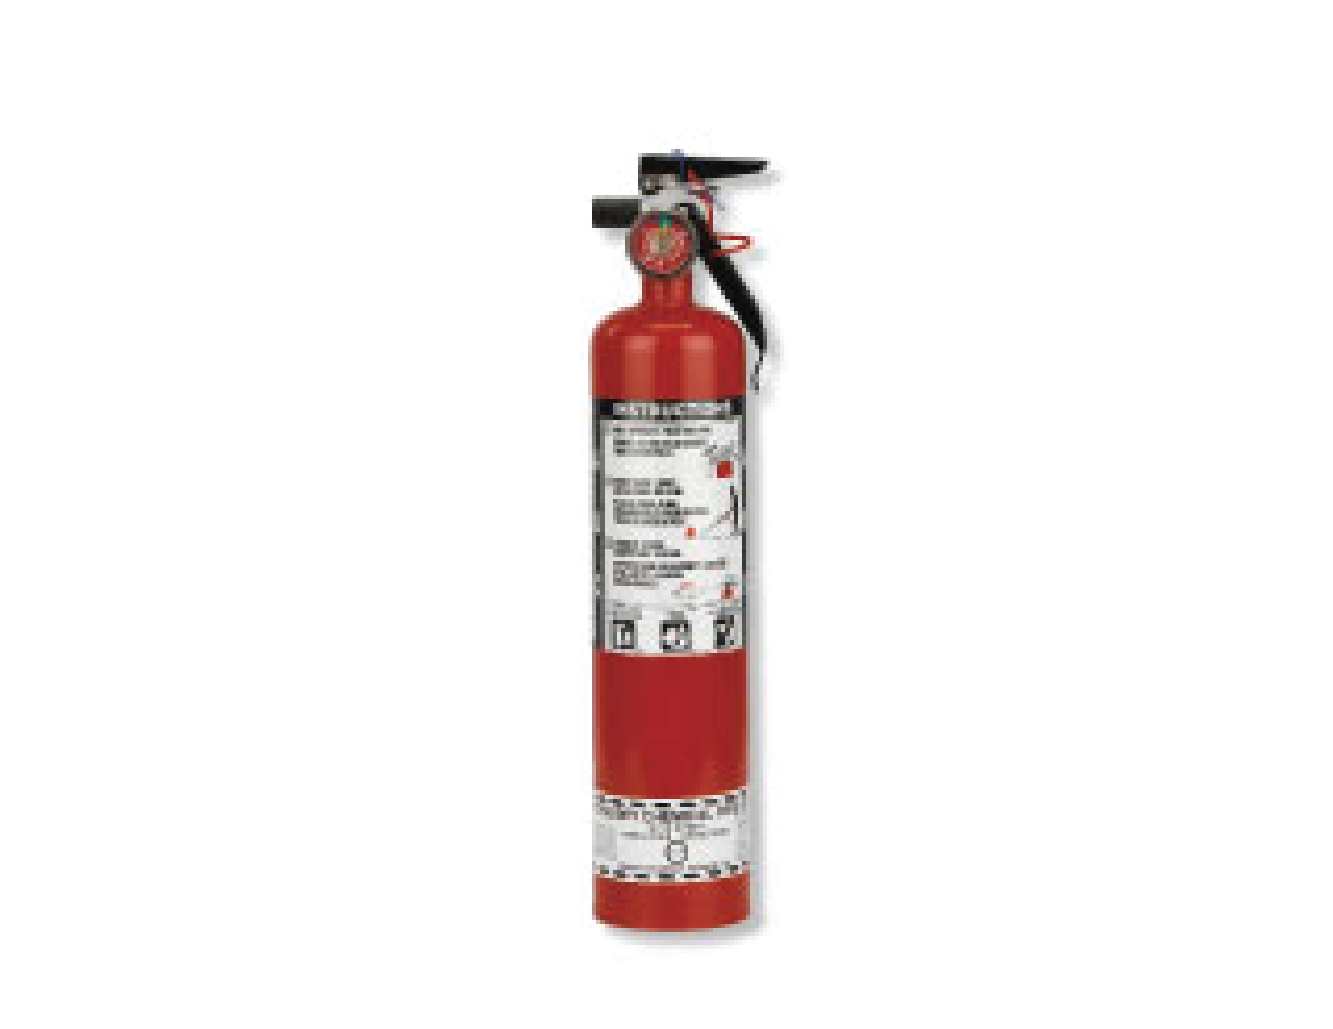 Fire Extinguisher – 1A 10BC